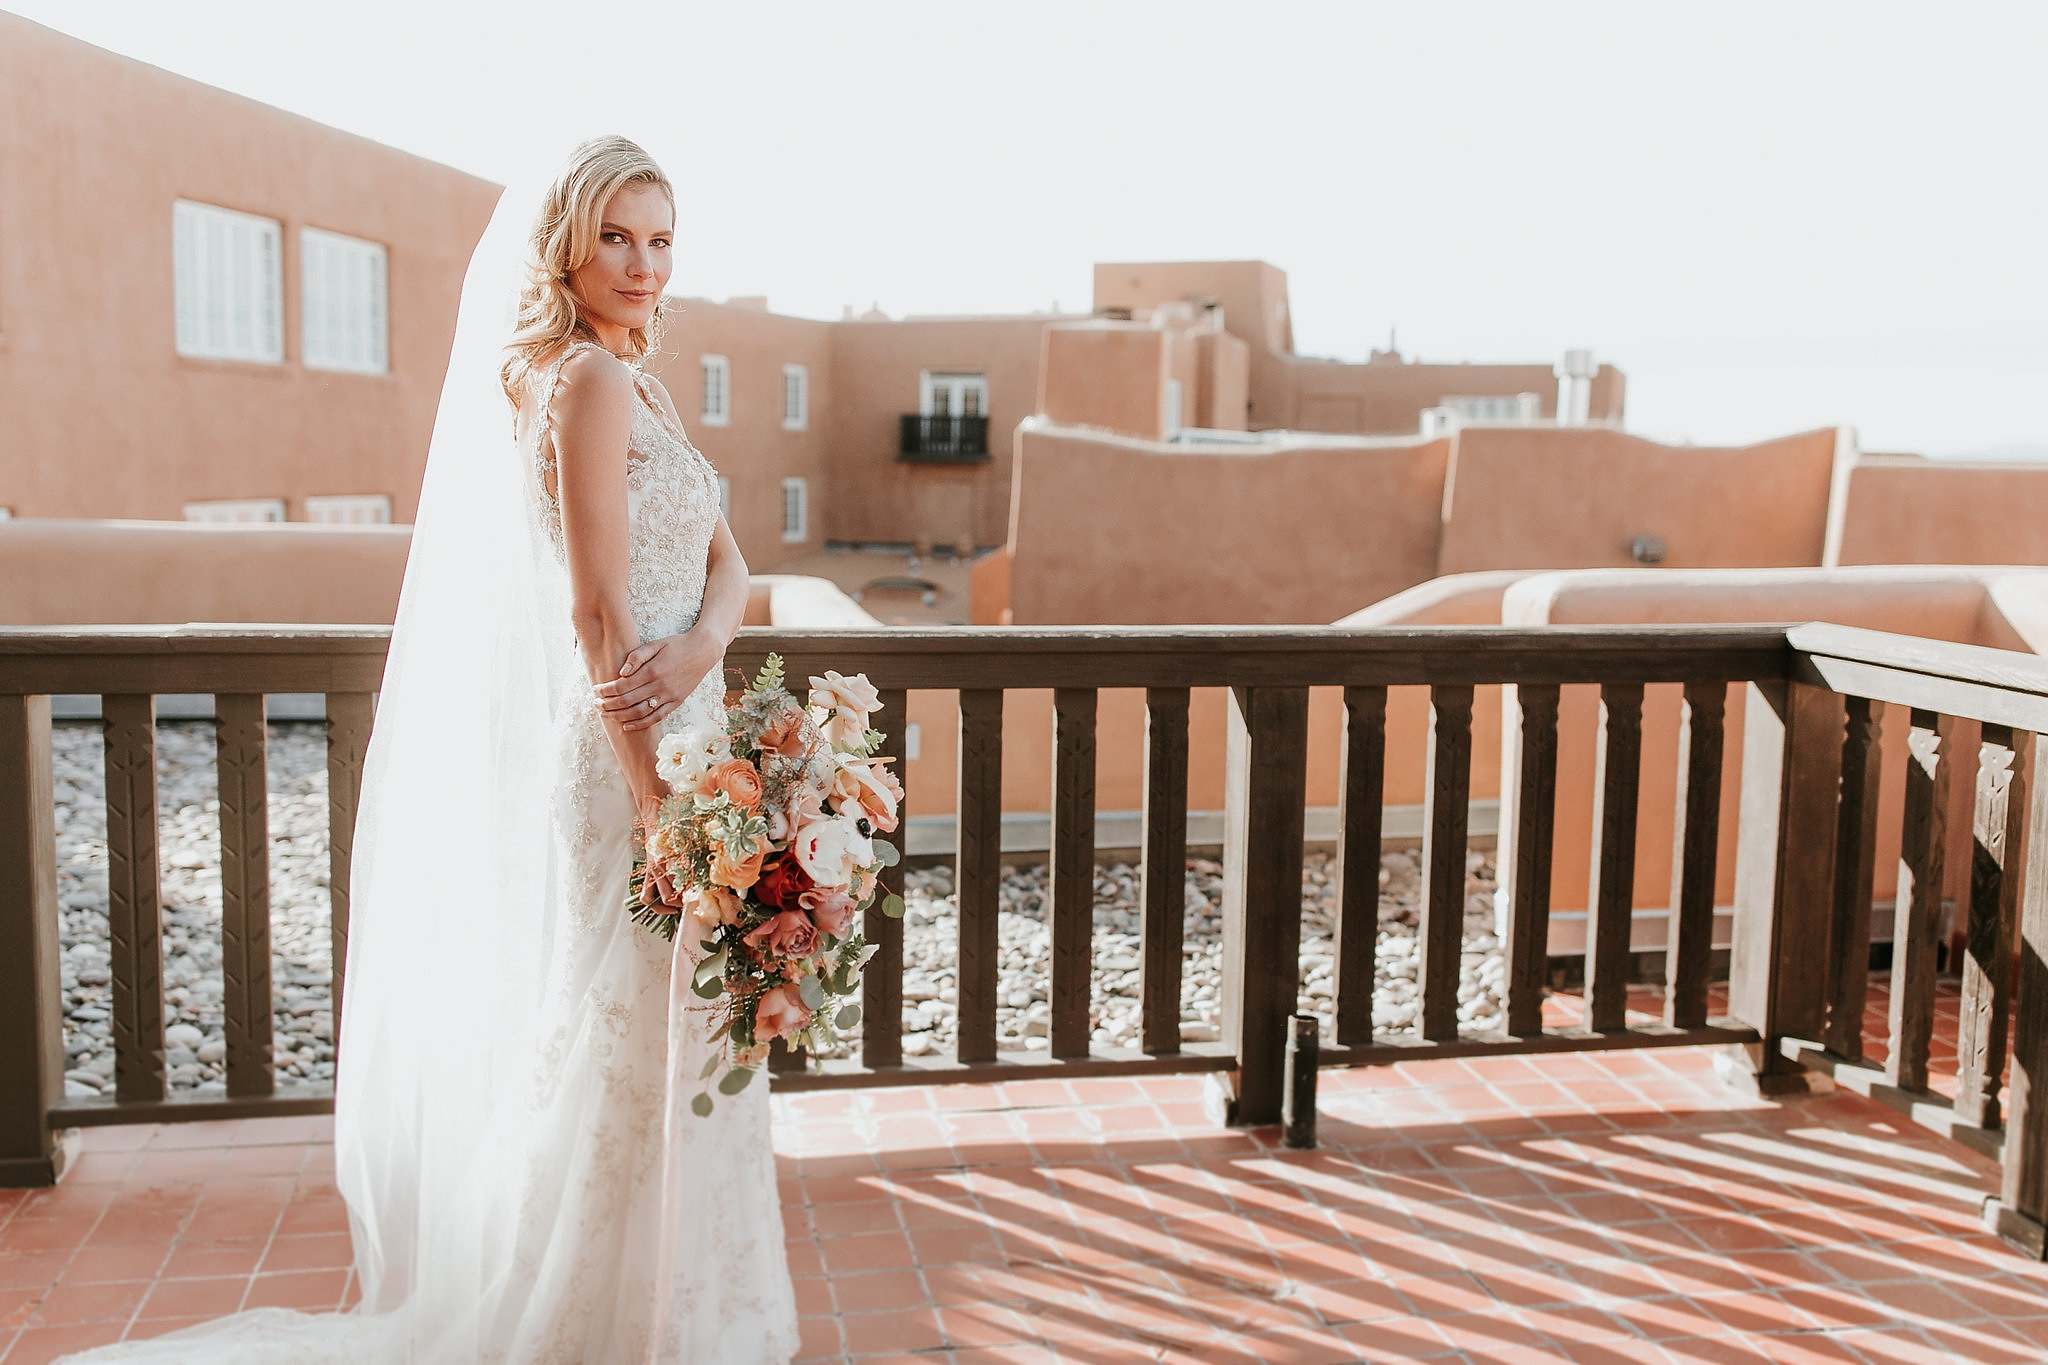 Alicia+lucia+photography+-+albuquerque+wedding+photographer+-+santa+fe+wedding+photography+-+new+mexico+wedding+photographer+-+new+mexico+wedding+-+santa+fe+wedding+-+albuquerque+wedding+-+bridal+hair_0052.jpg